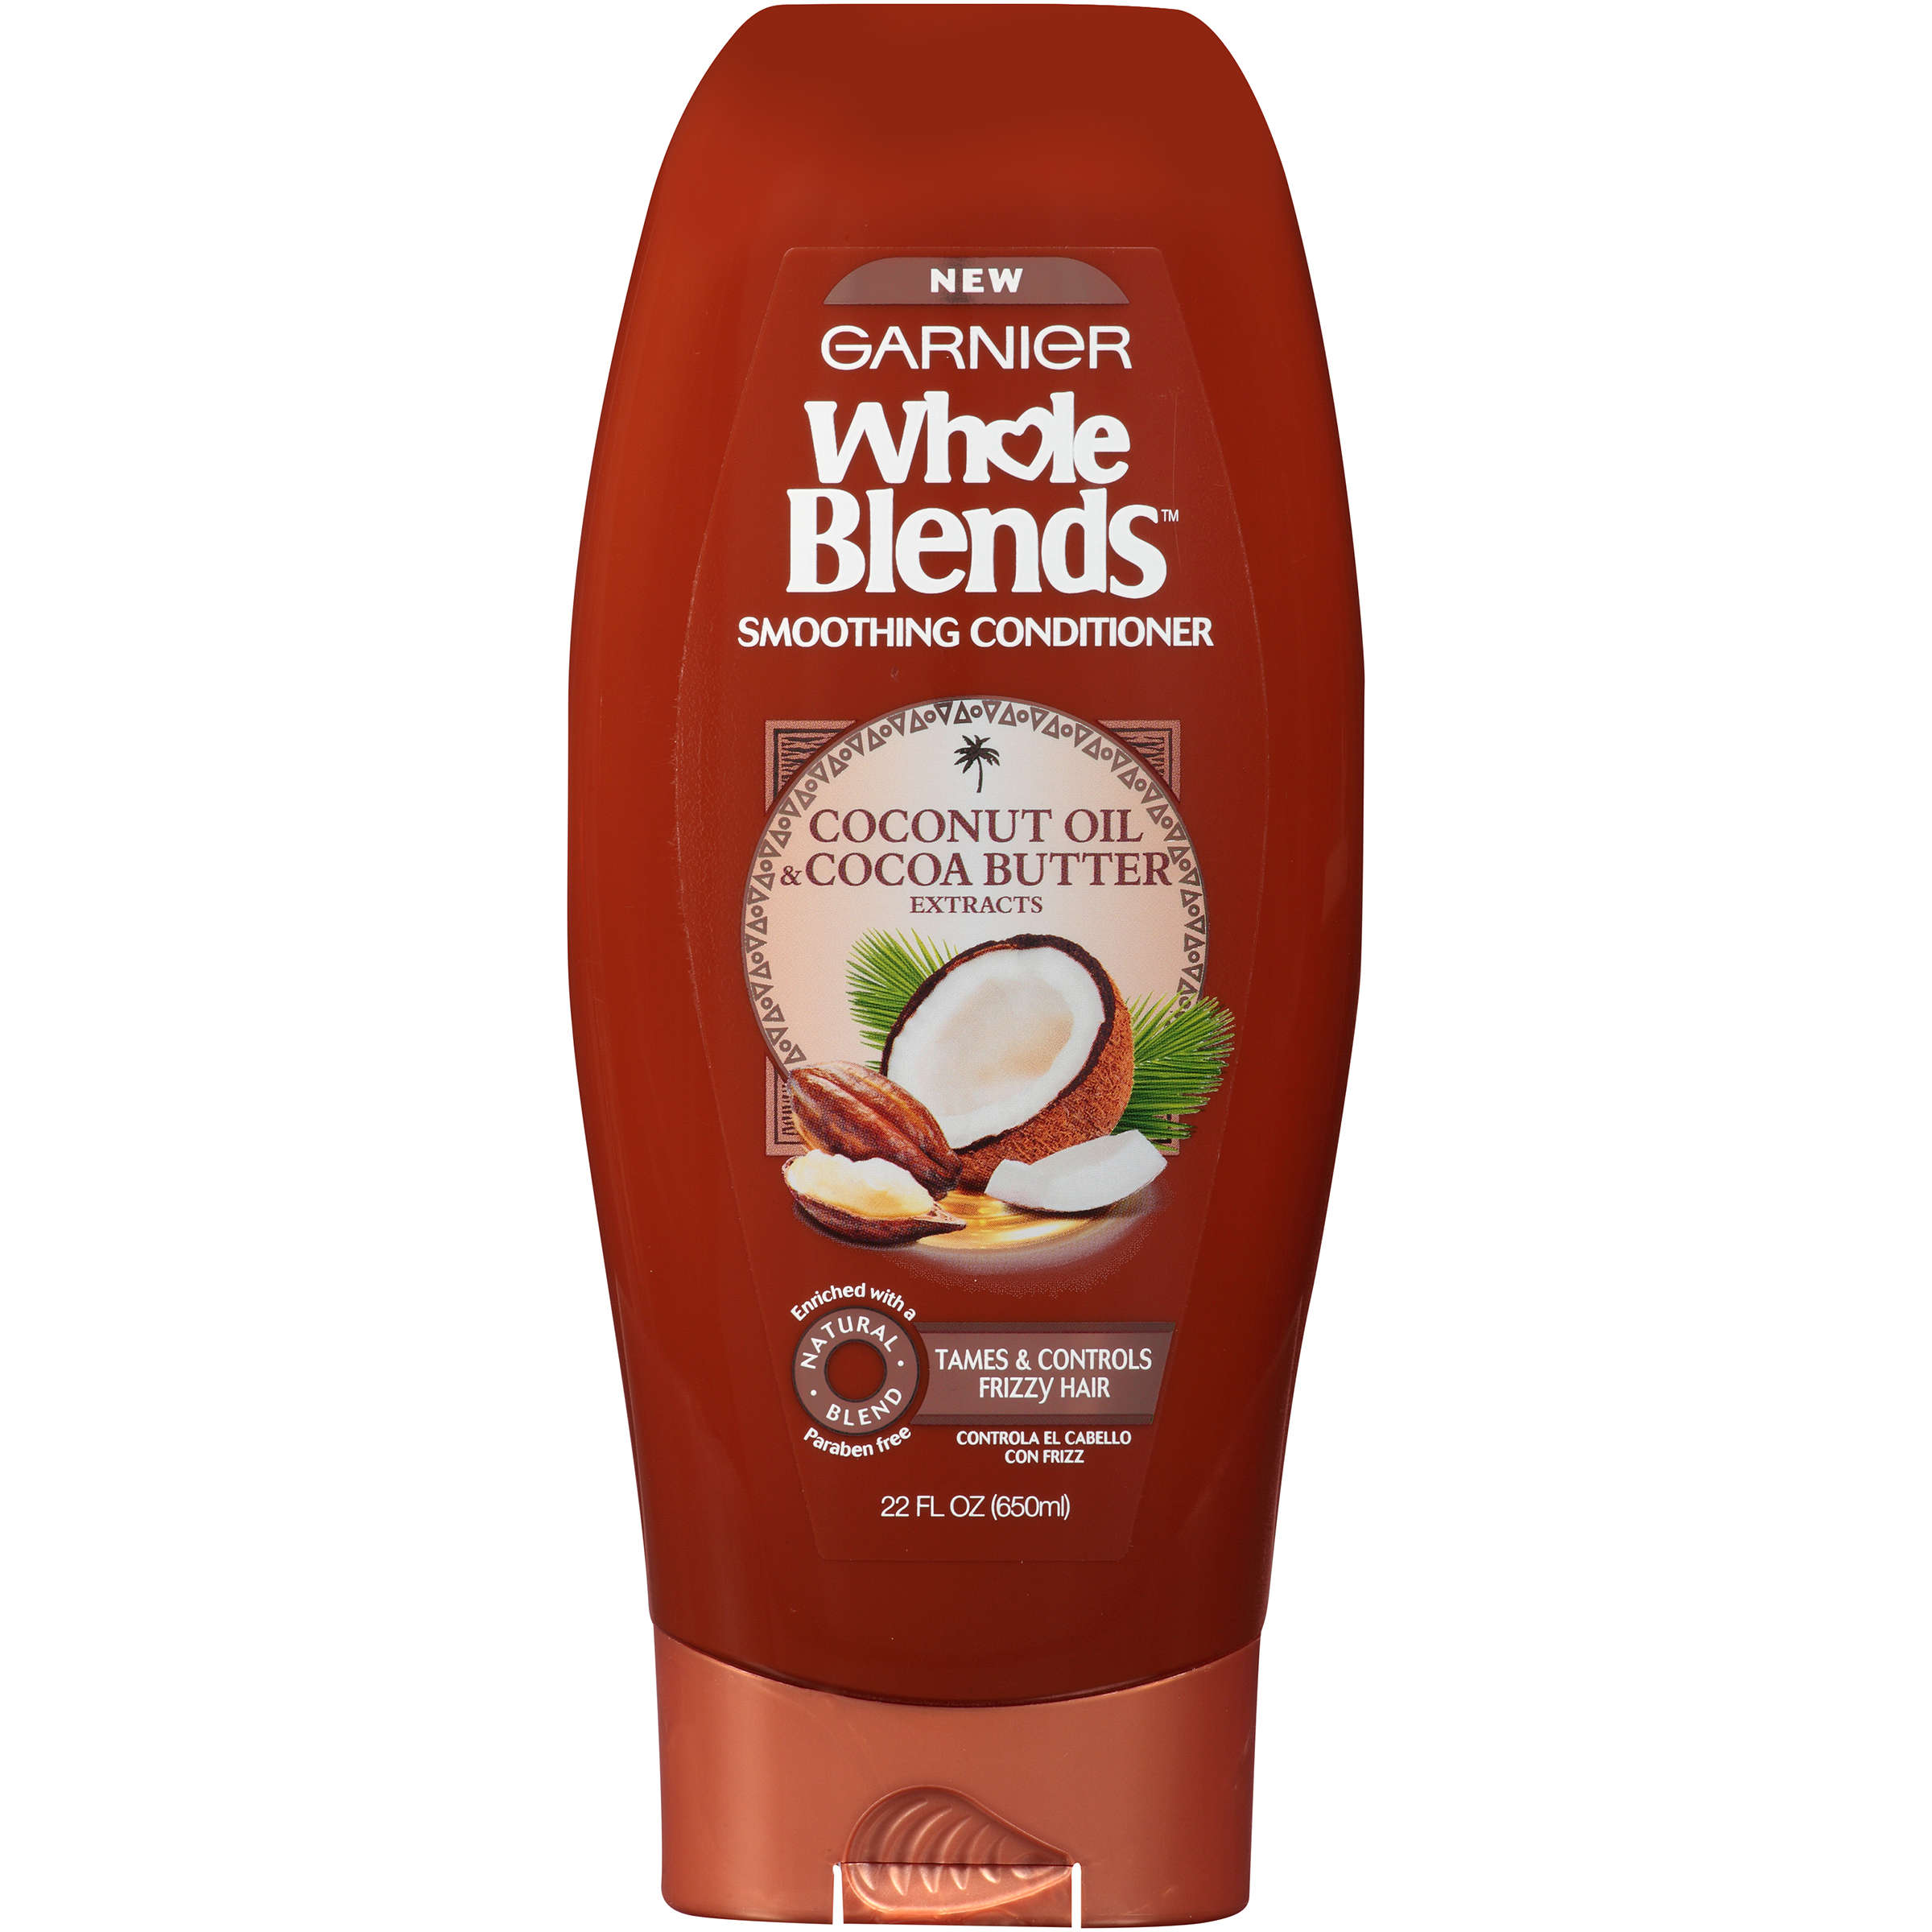 Garnier Whole Blends Conditioner with Coconut Oil & Cocoa Butter Extracts 22 FL OZ